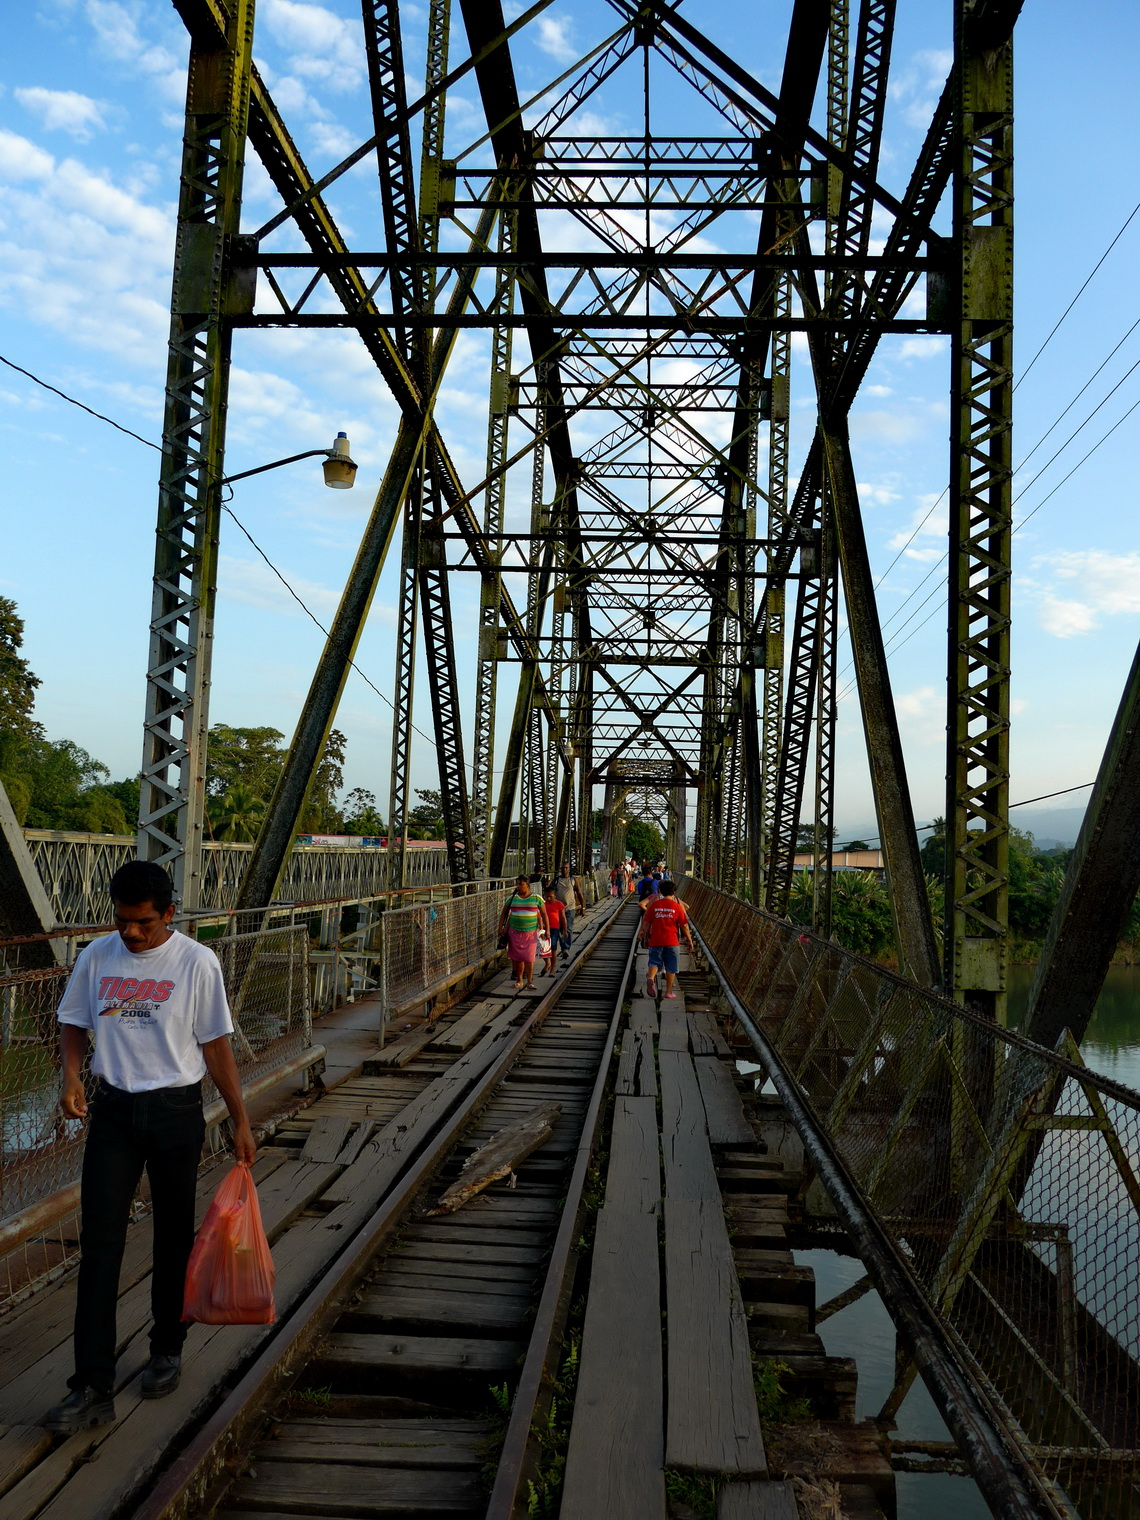 The old railway bridge on the border between Costa Rica and Panama which is now used by pedestrians - Look at the nice wholes